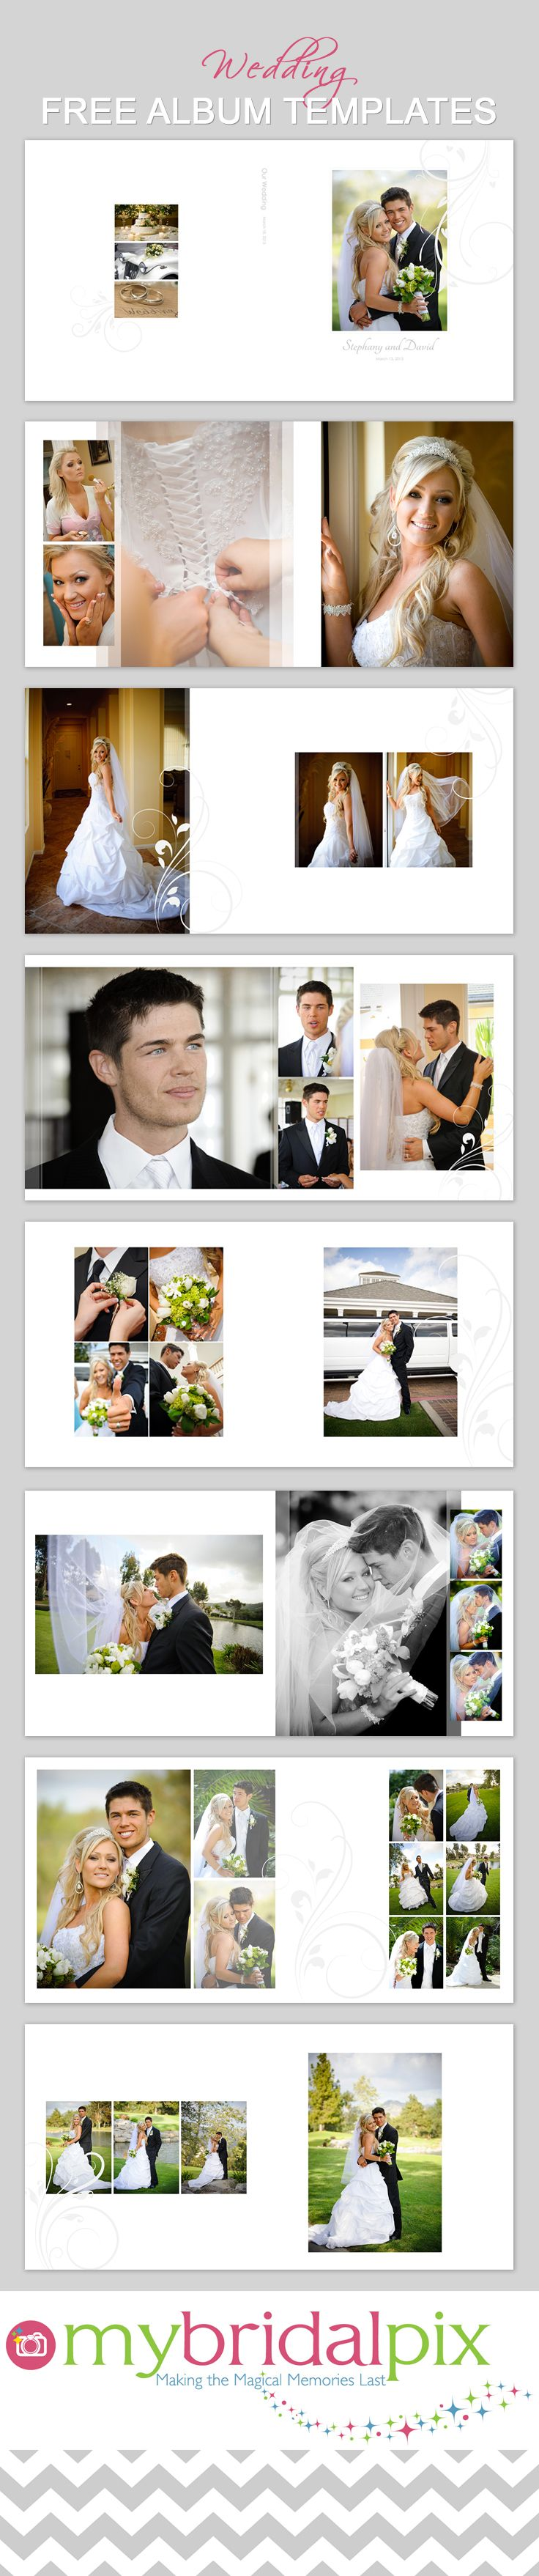 23 best wedding album layout images on pinterest diy wedding albums simply drag and drop your images into ready made templates solutioingenieria Image collections